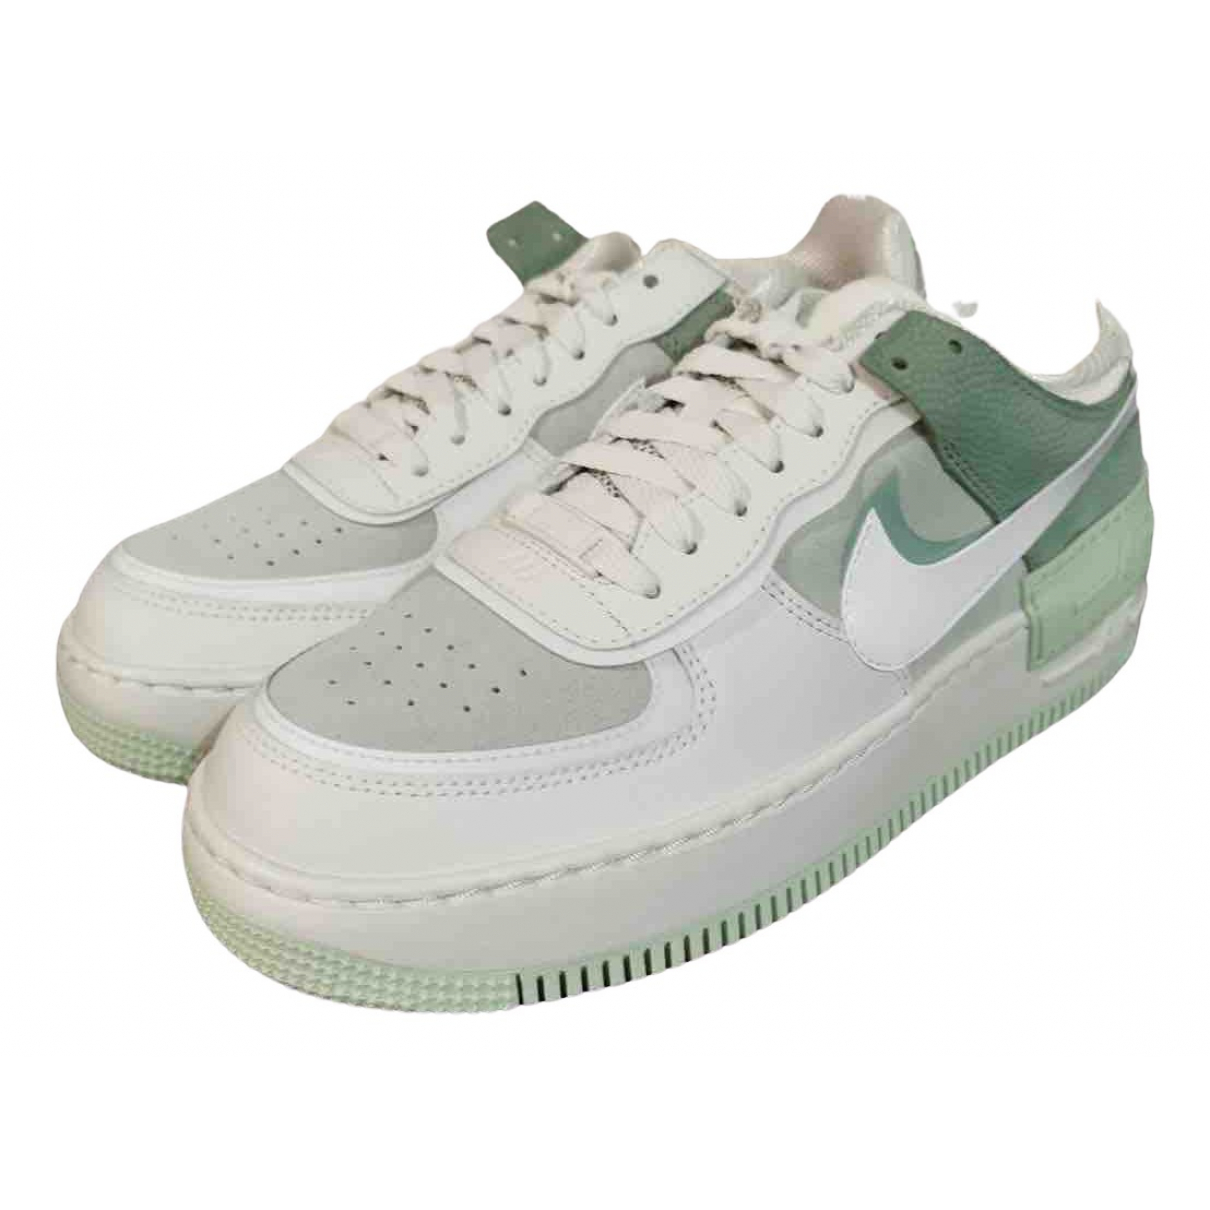 Nike Air Force 1 Green Leather Trainers for Women 40.5 EU